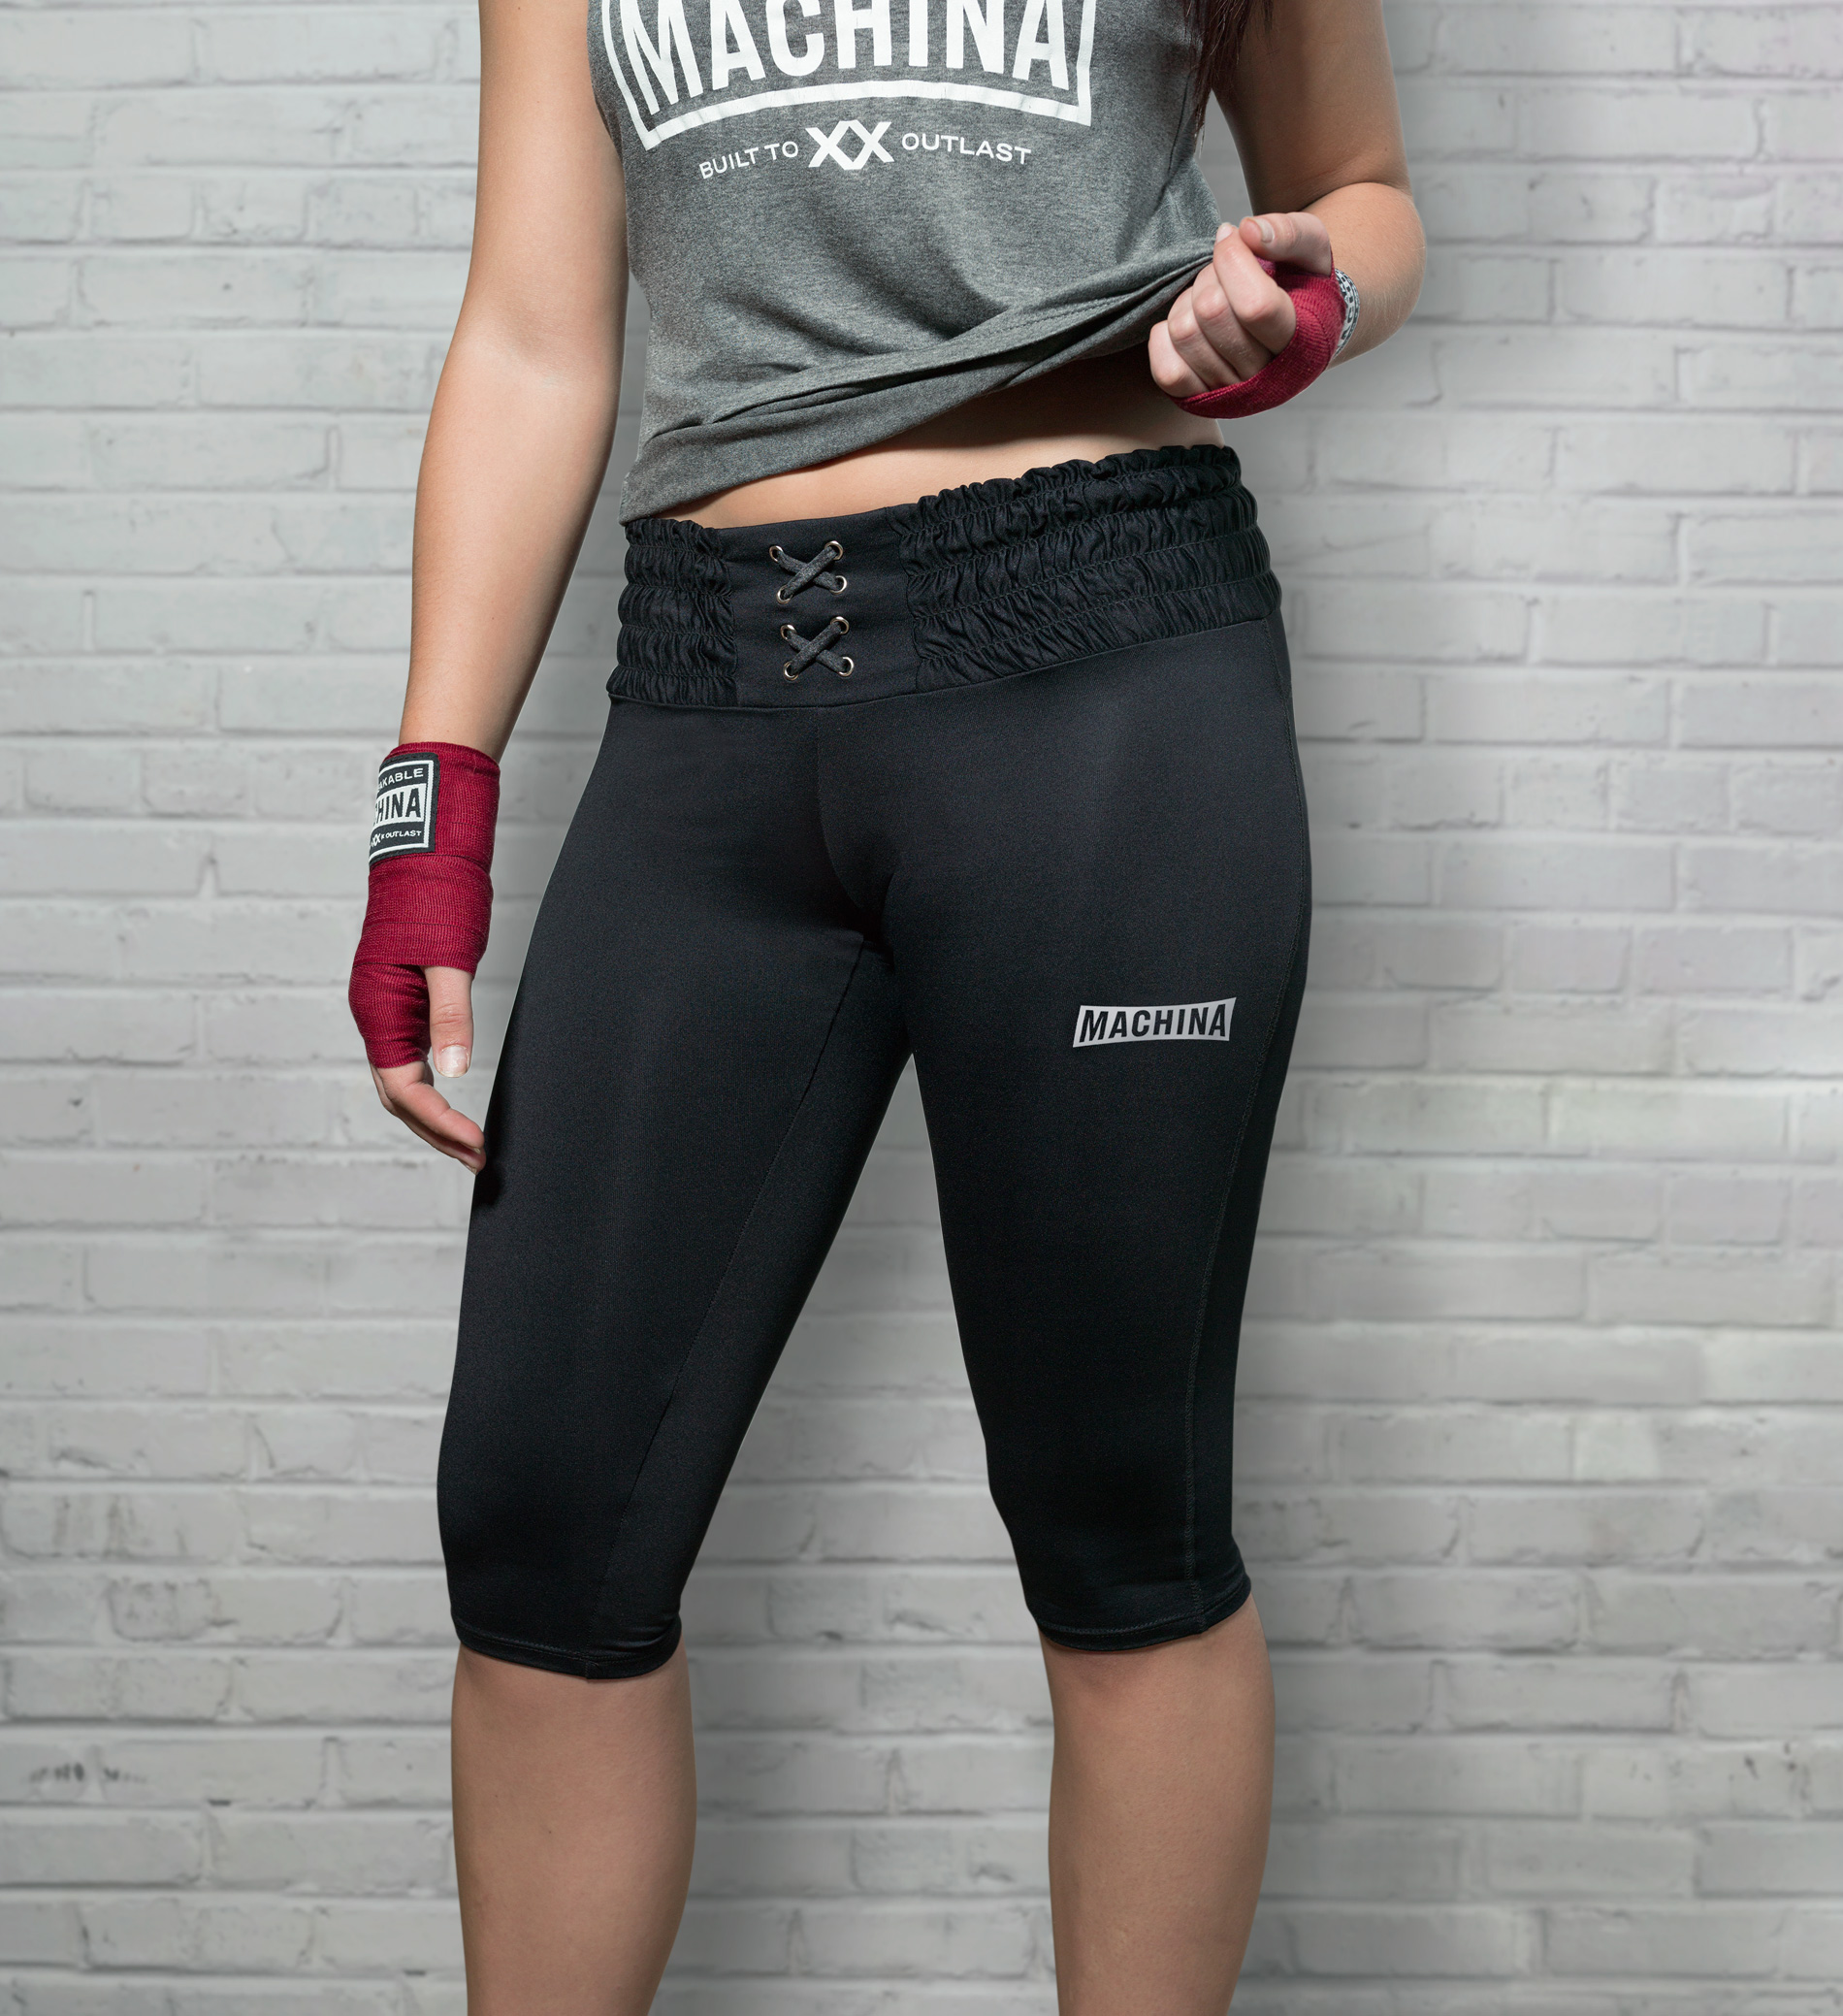 Machina Women's Boxing Club Pants